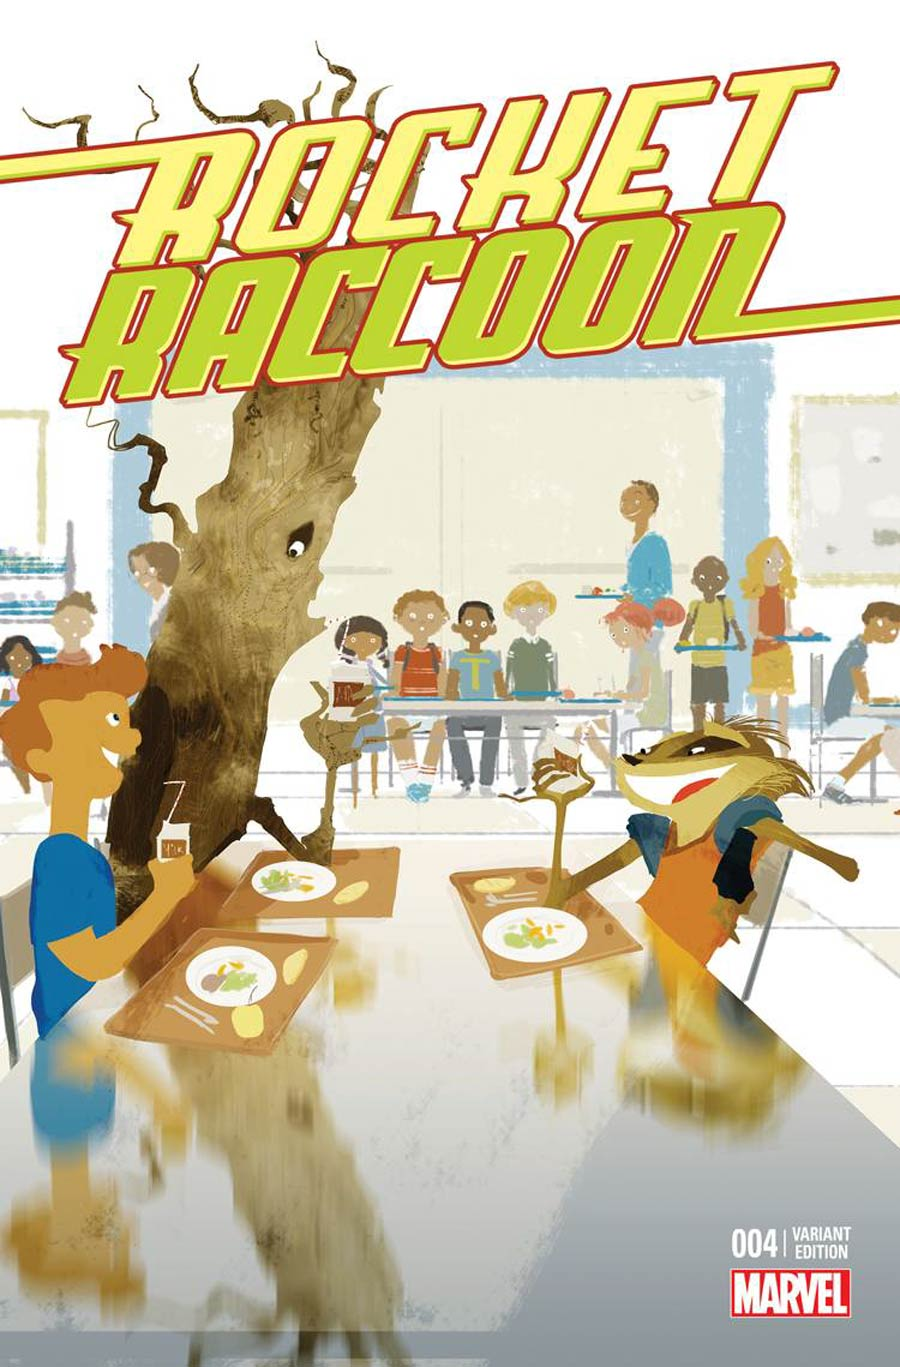 Rocket Raccoon Vol 2 #4 Cover C Incentive Stomp Out Bullying Variant Cover